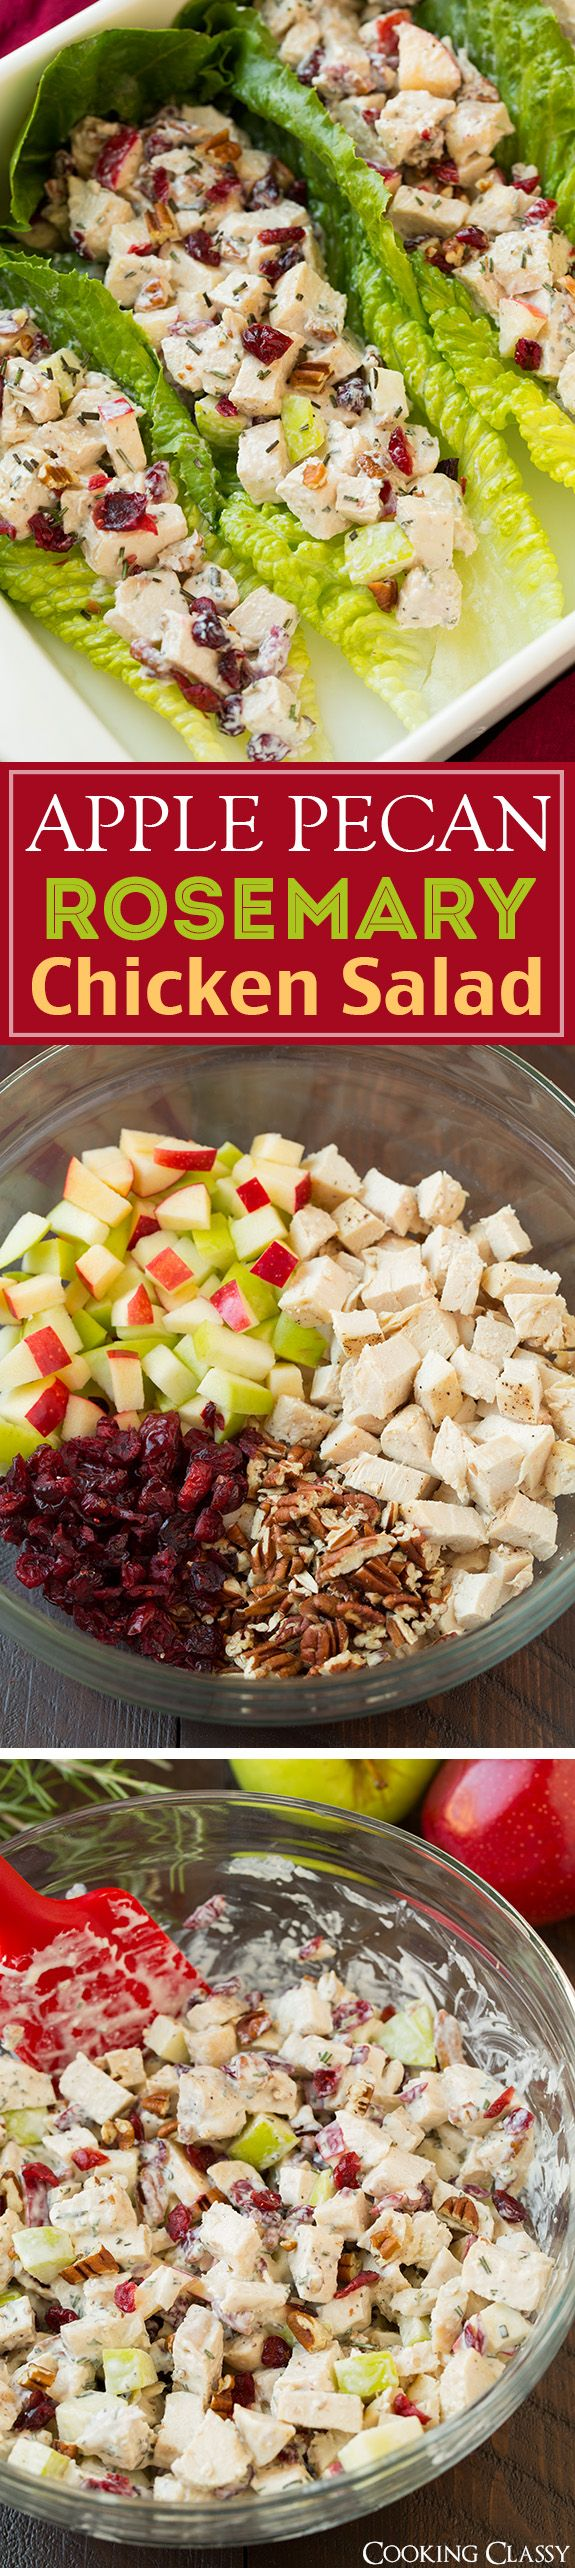 Apple Pecan Rosemary Greek Yogurt Chicken Salad - perfect in a sandwich or wrapped in lettuce